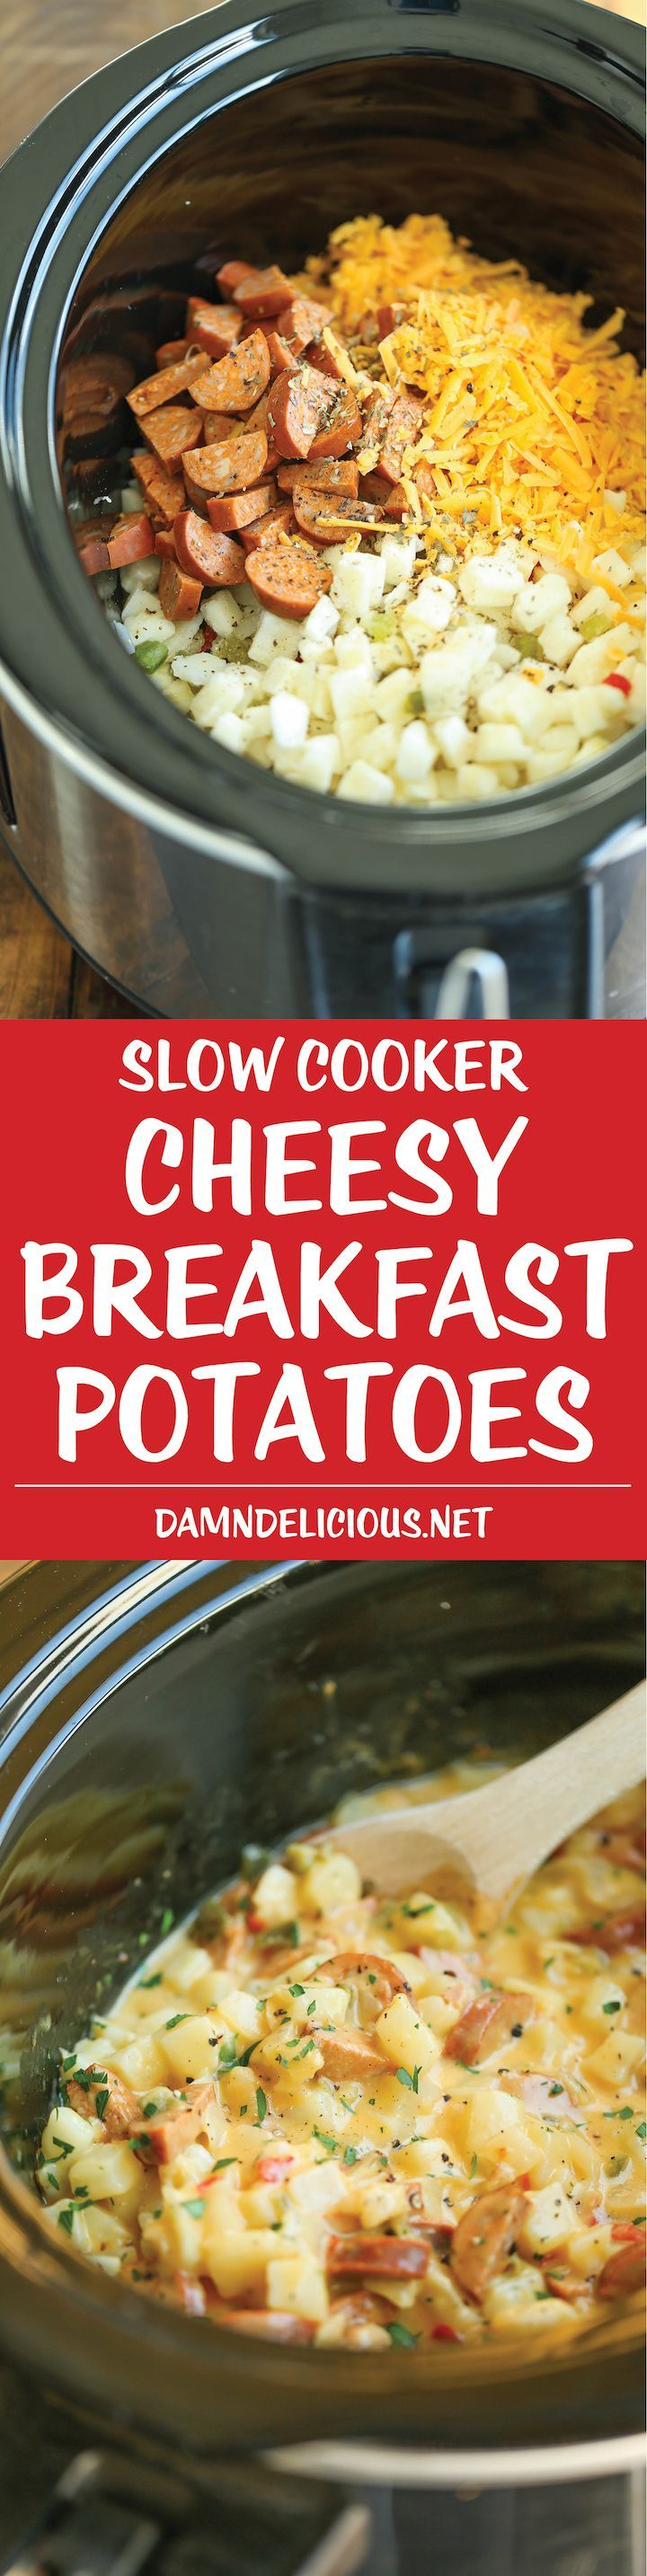 Slow Cooker Cheesy Breakfast Potatoes - This is the ultimate breakfast worth waking up to! Easily made right in your crockpot. Set it, forget, and devour!